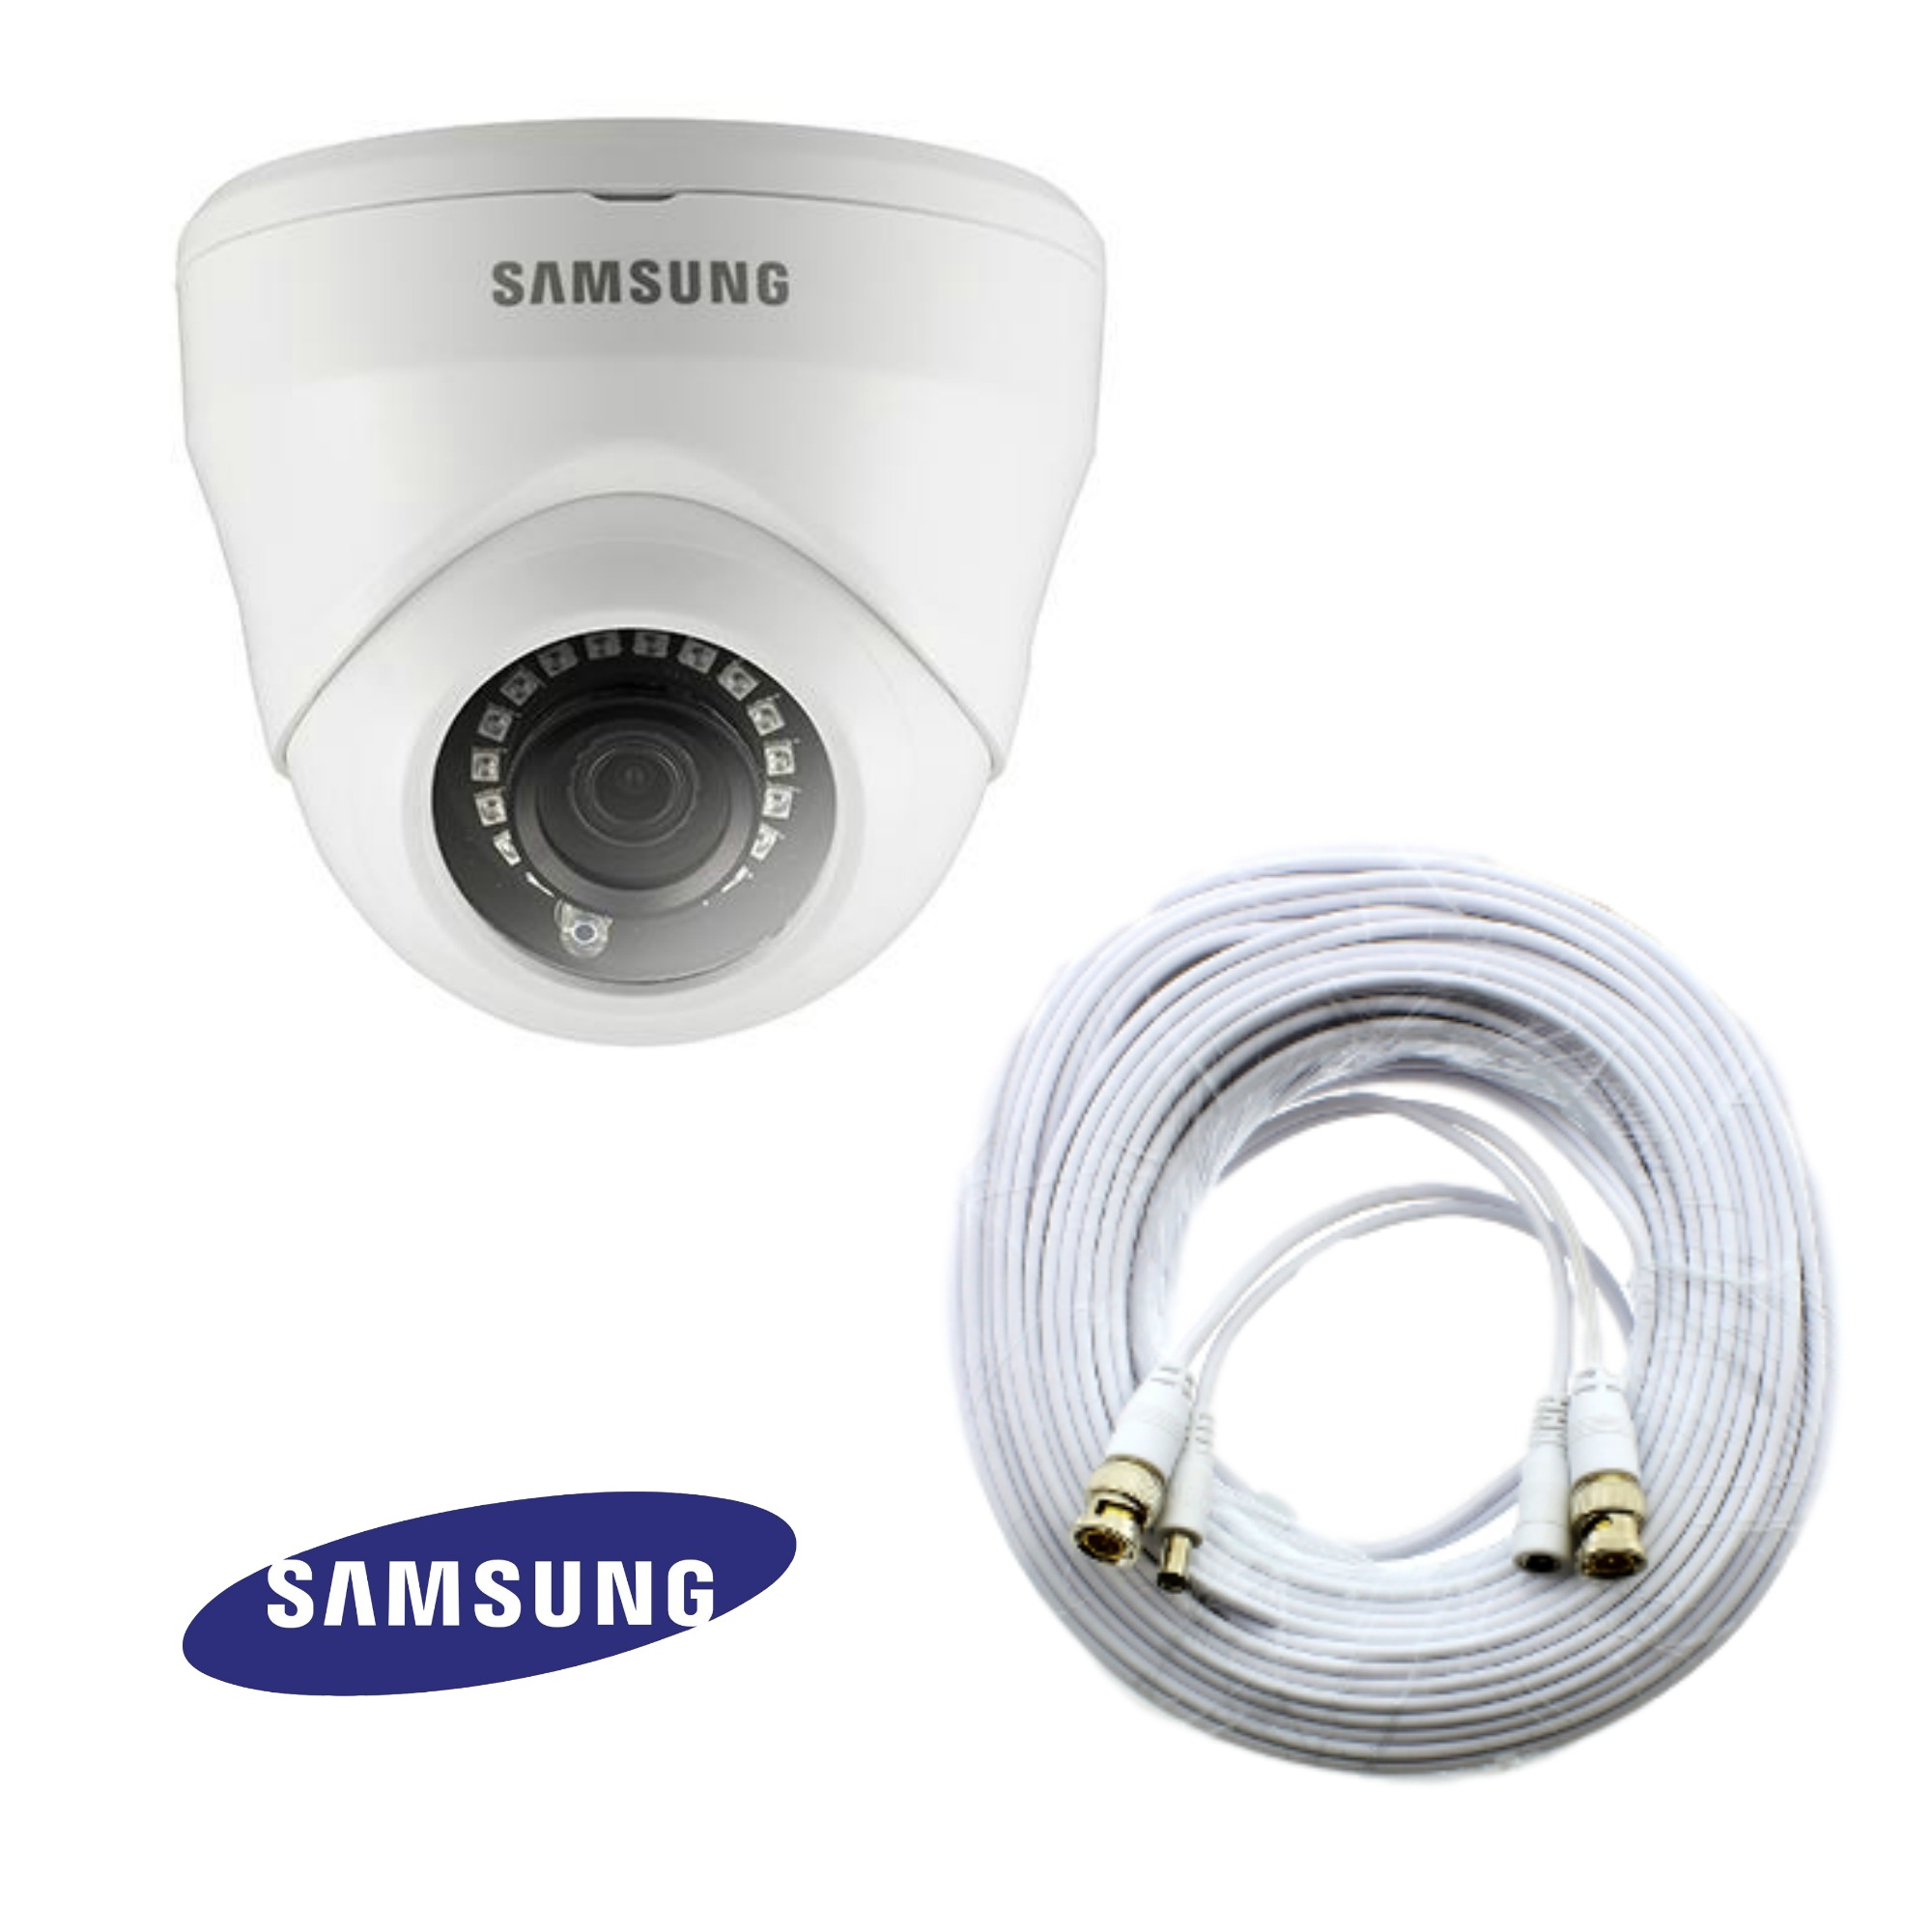 sdc-9443dc samsung dome security camera